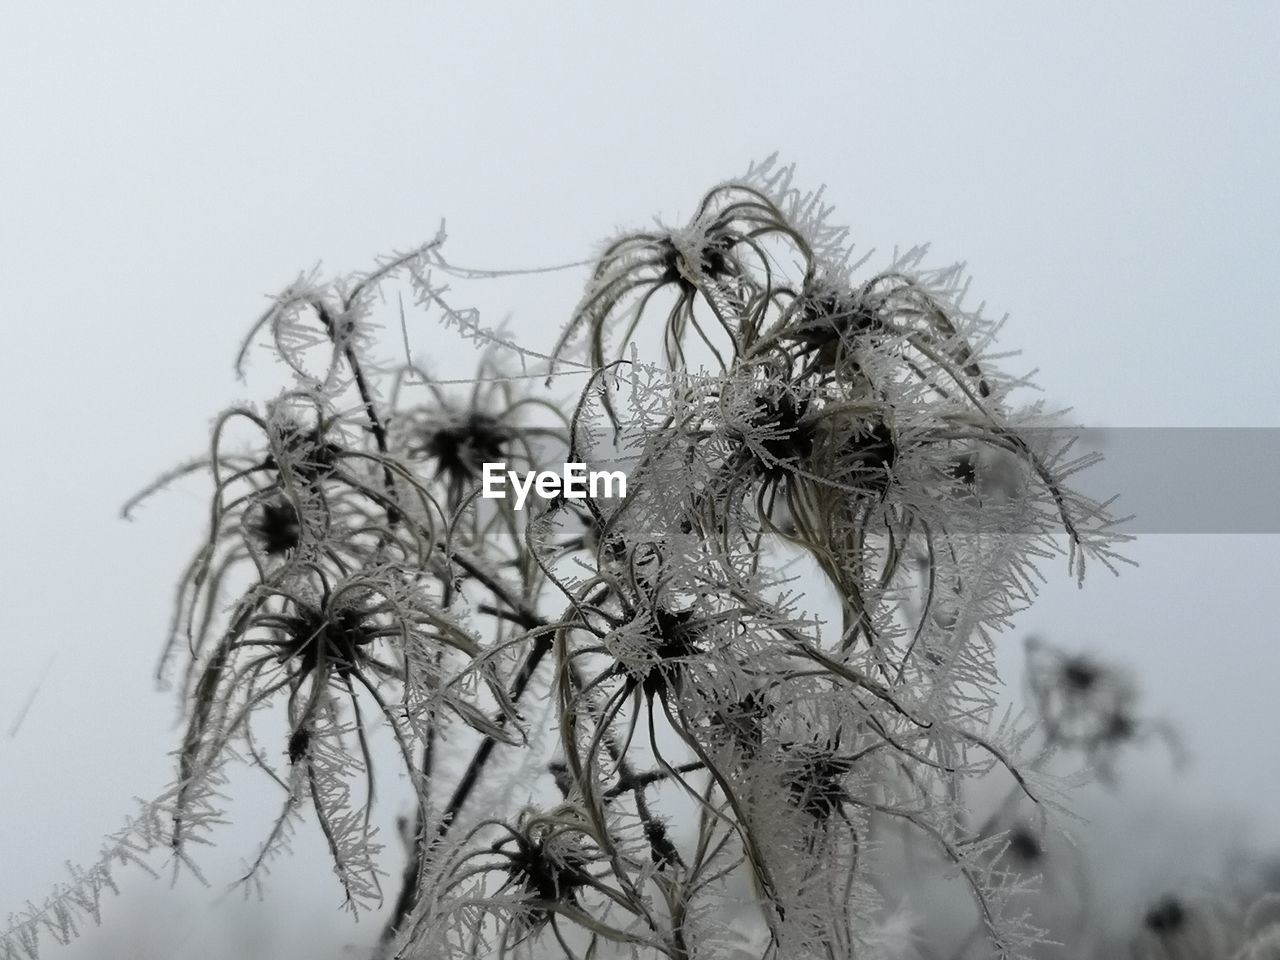 Close-Up Of Frosted Plants Against Clear Sky During Winter